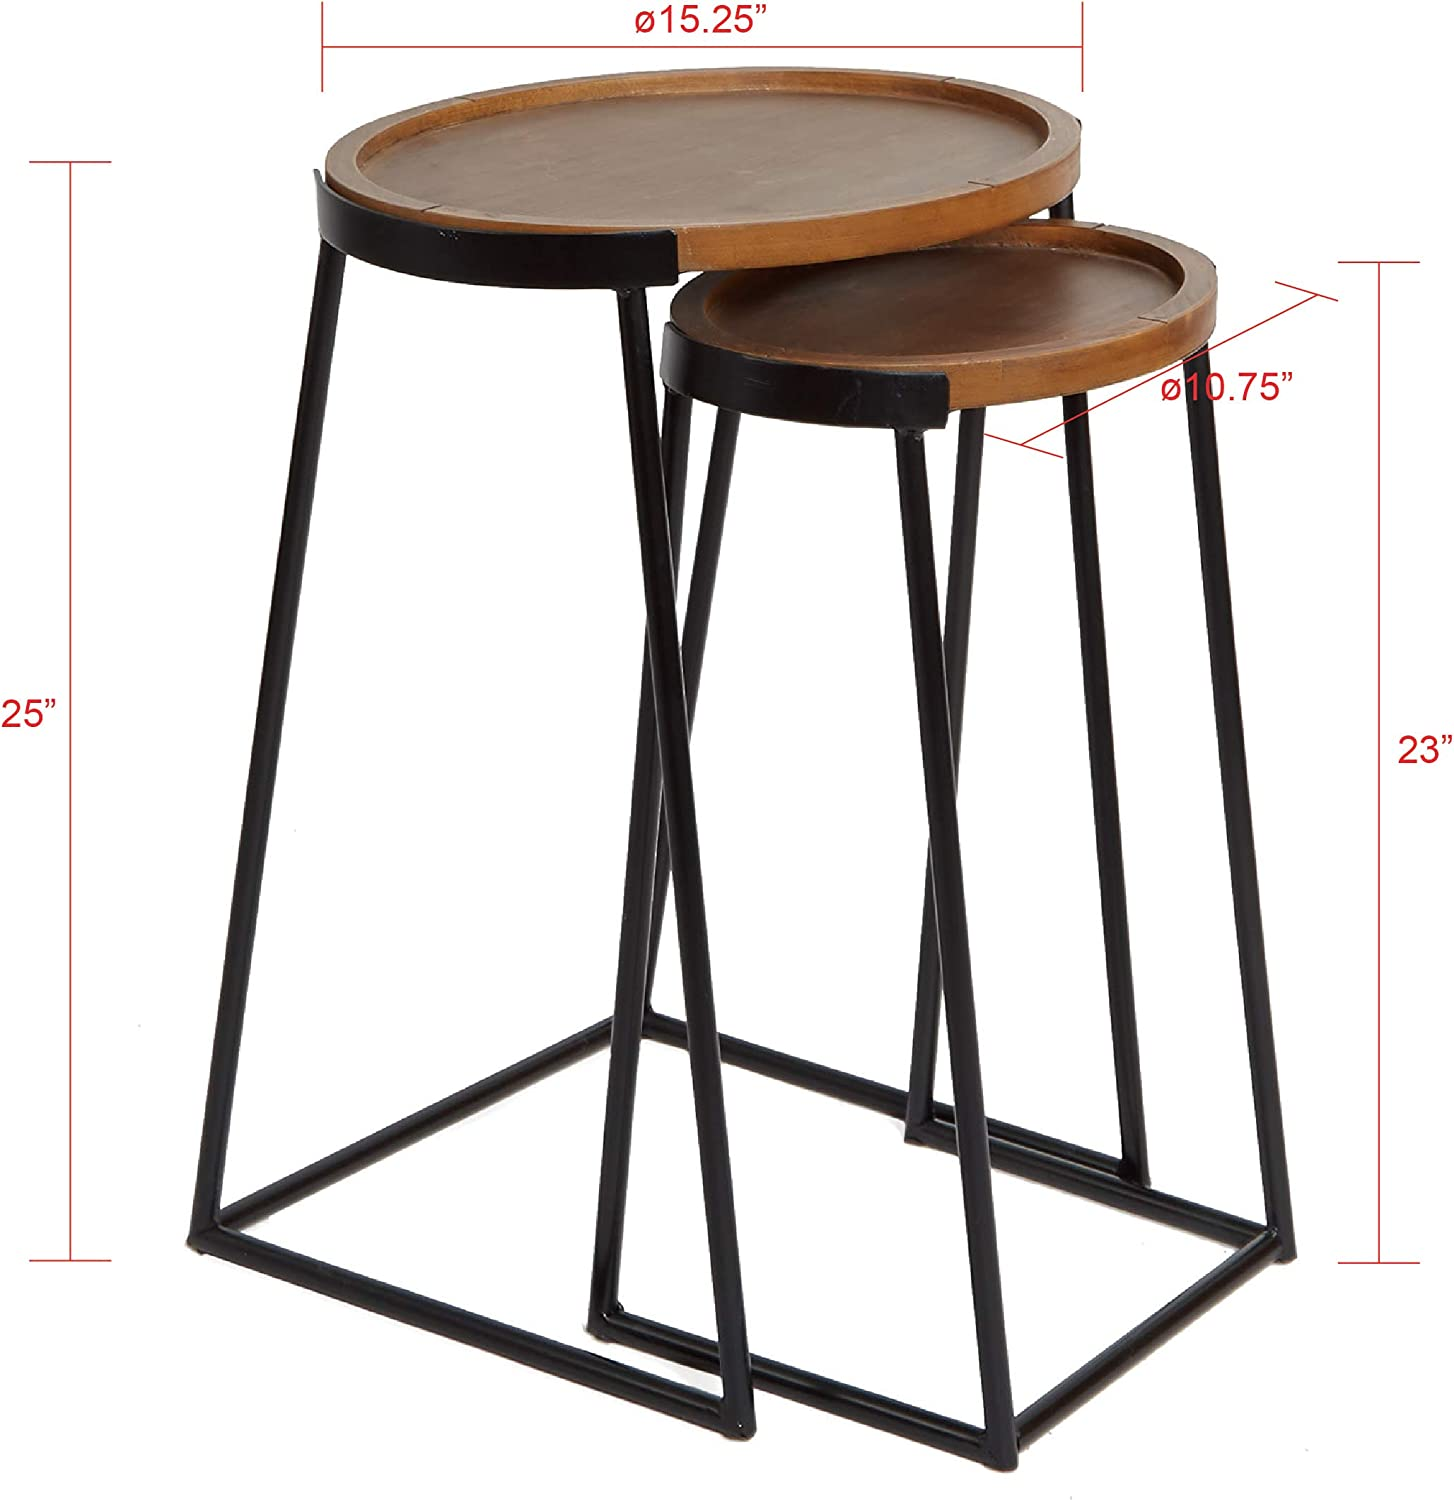 Silverwood Nesting Side Table, Black Metal and Dark Wood: Kitchen & Dining